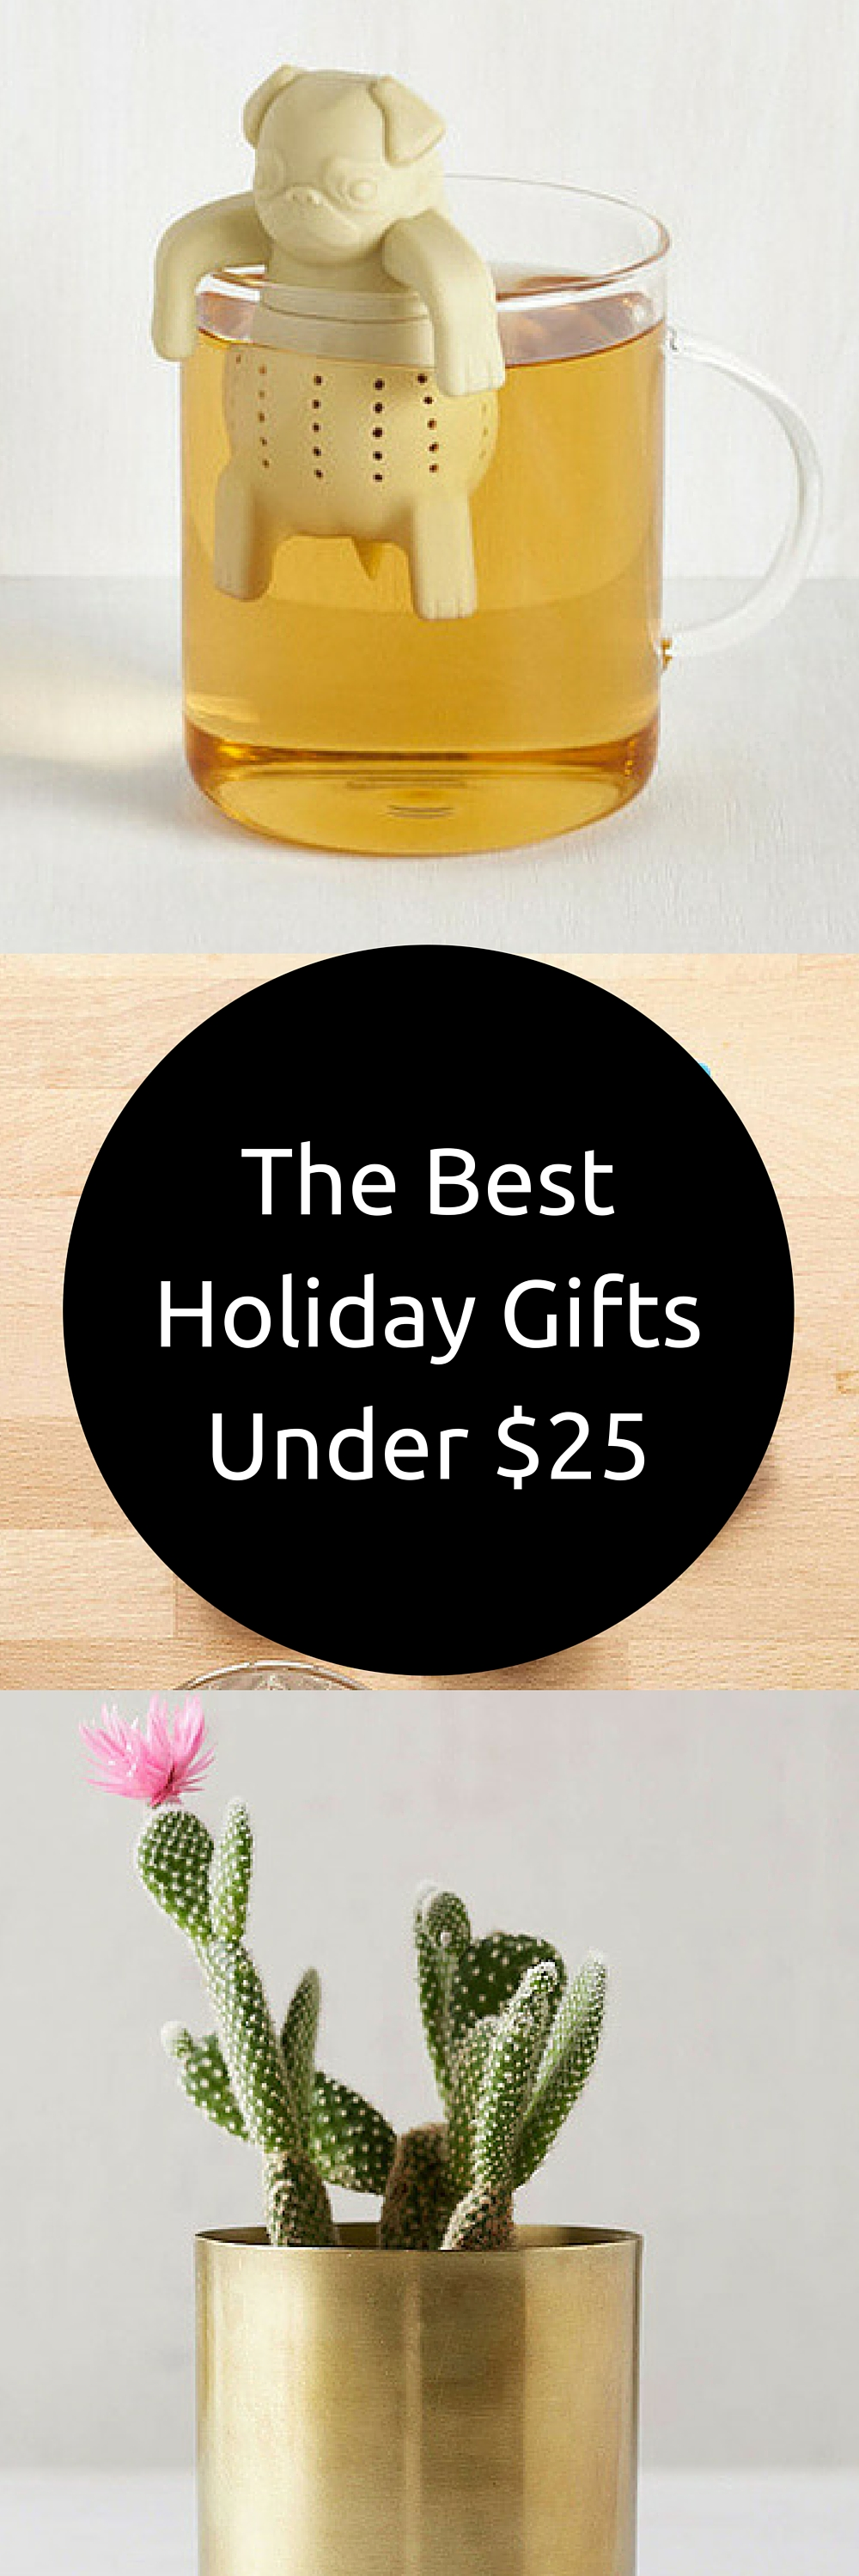 The Best Holiday Gifts Under 25 Quirky Gifts Gifts Holiday Gifts